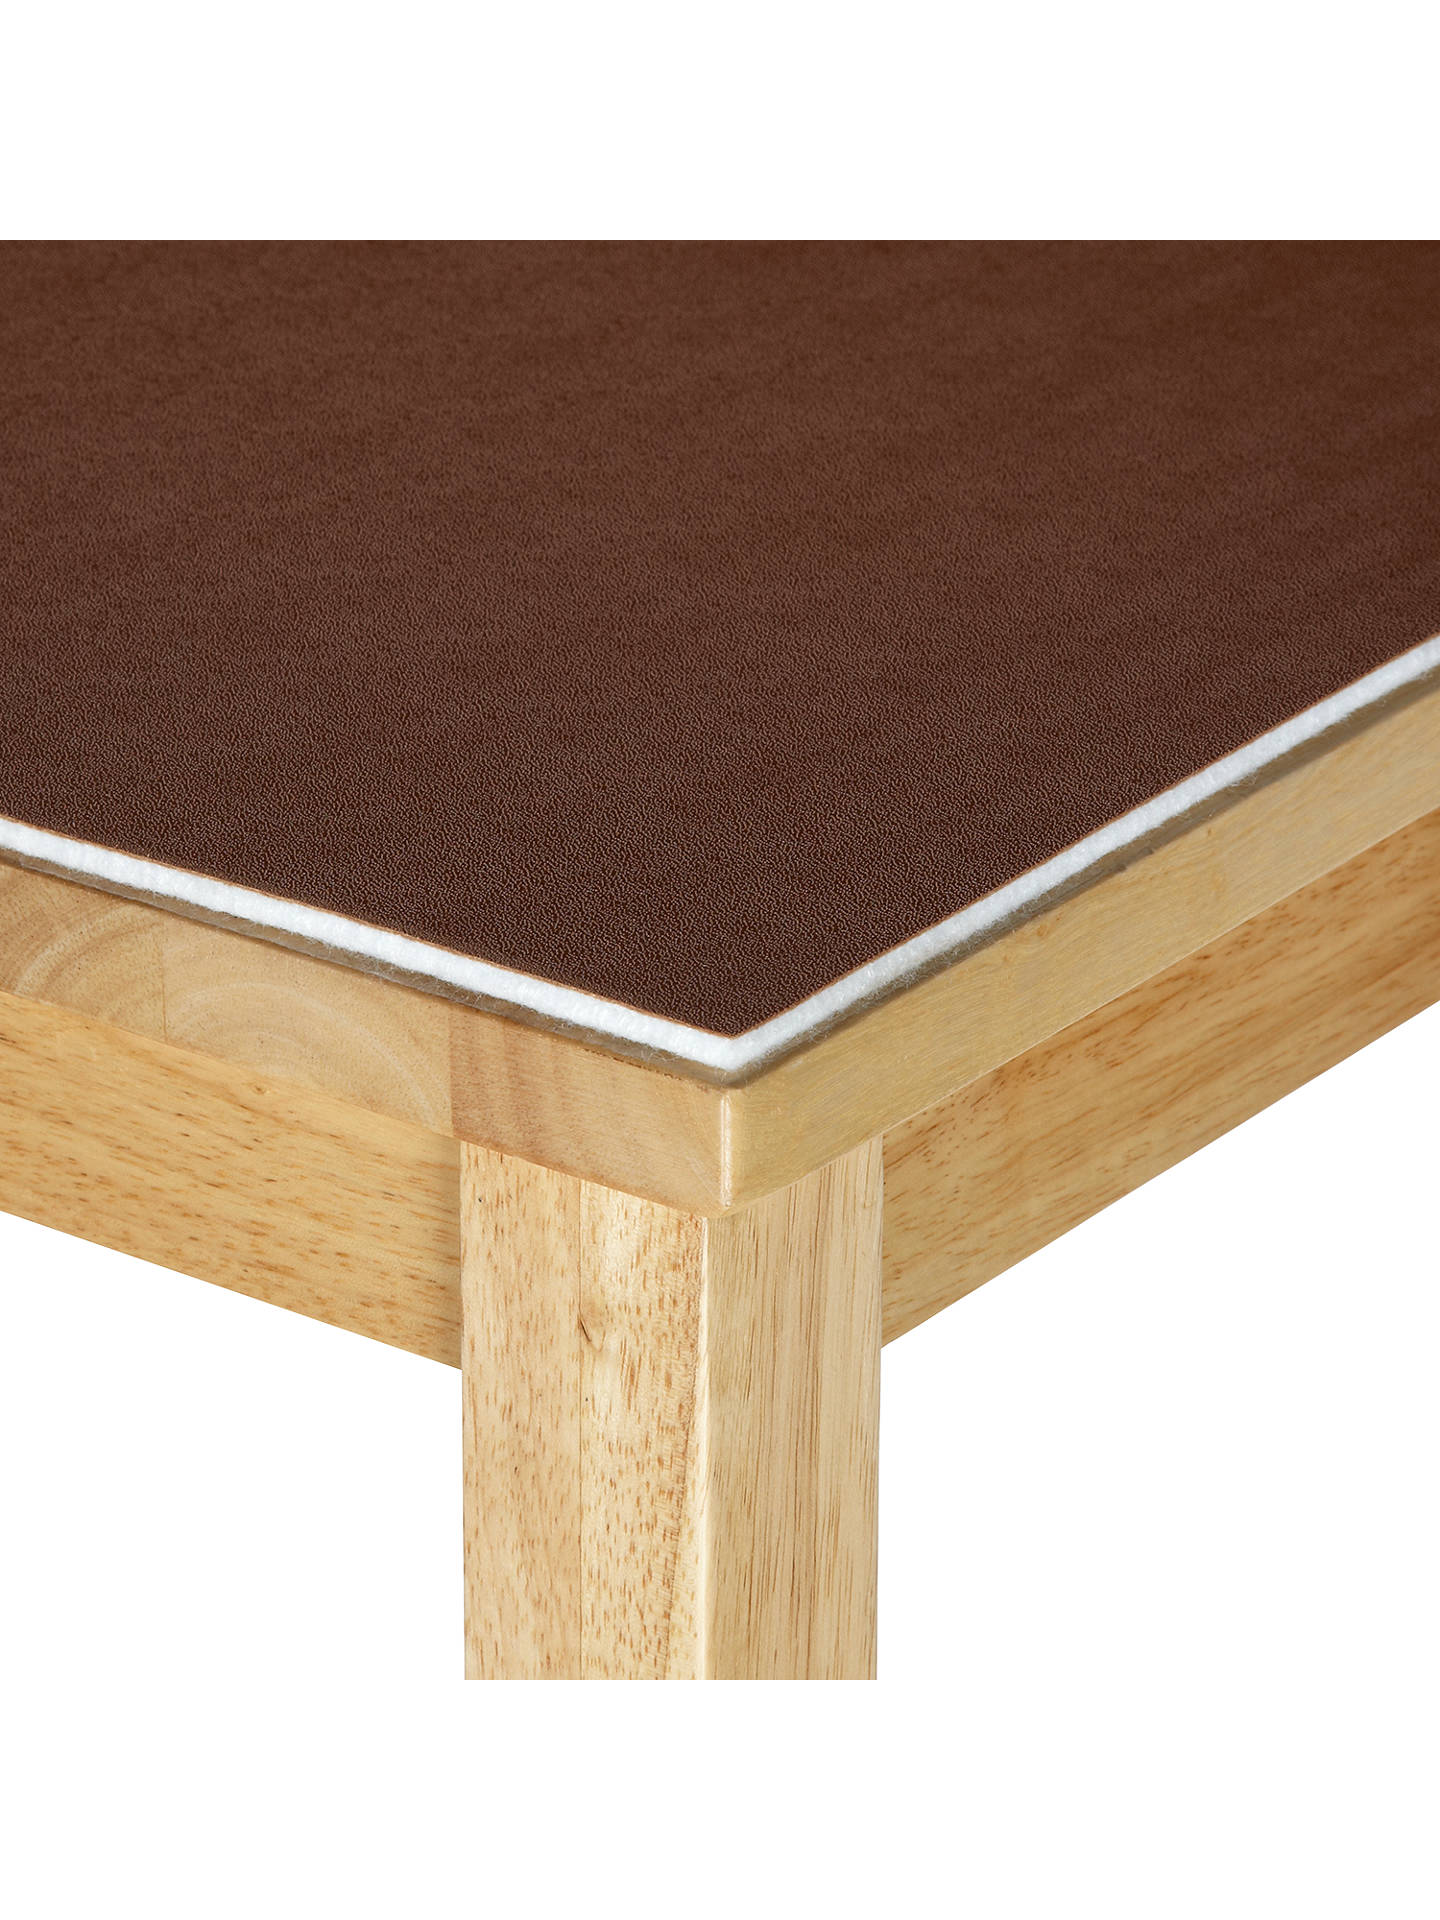 BuyJohn Lewis & Partners Table Protector Fabric, Nutmeg, W152cm, L8m Online at johnlewis.com